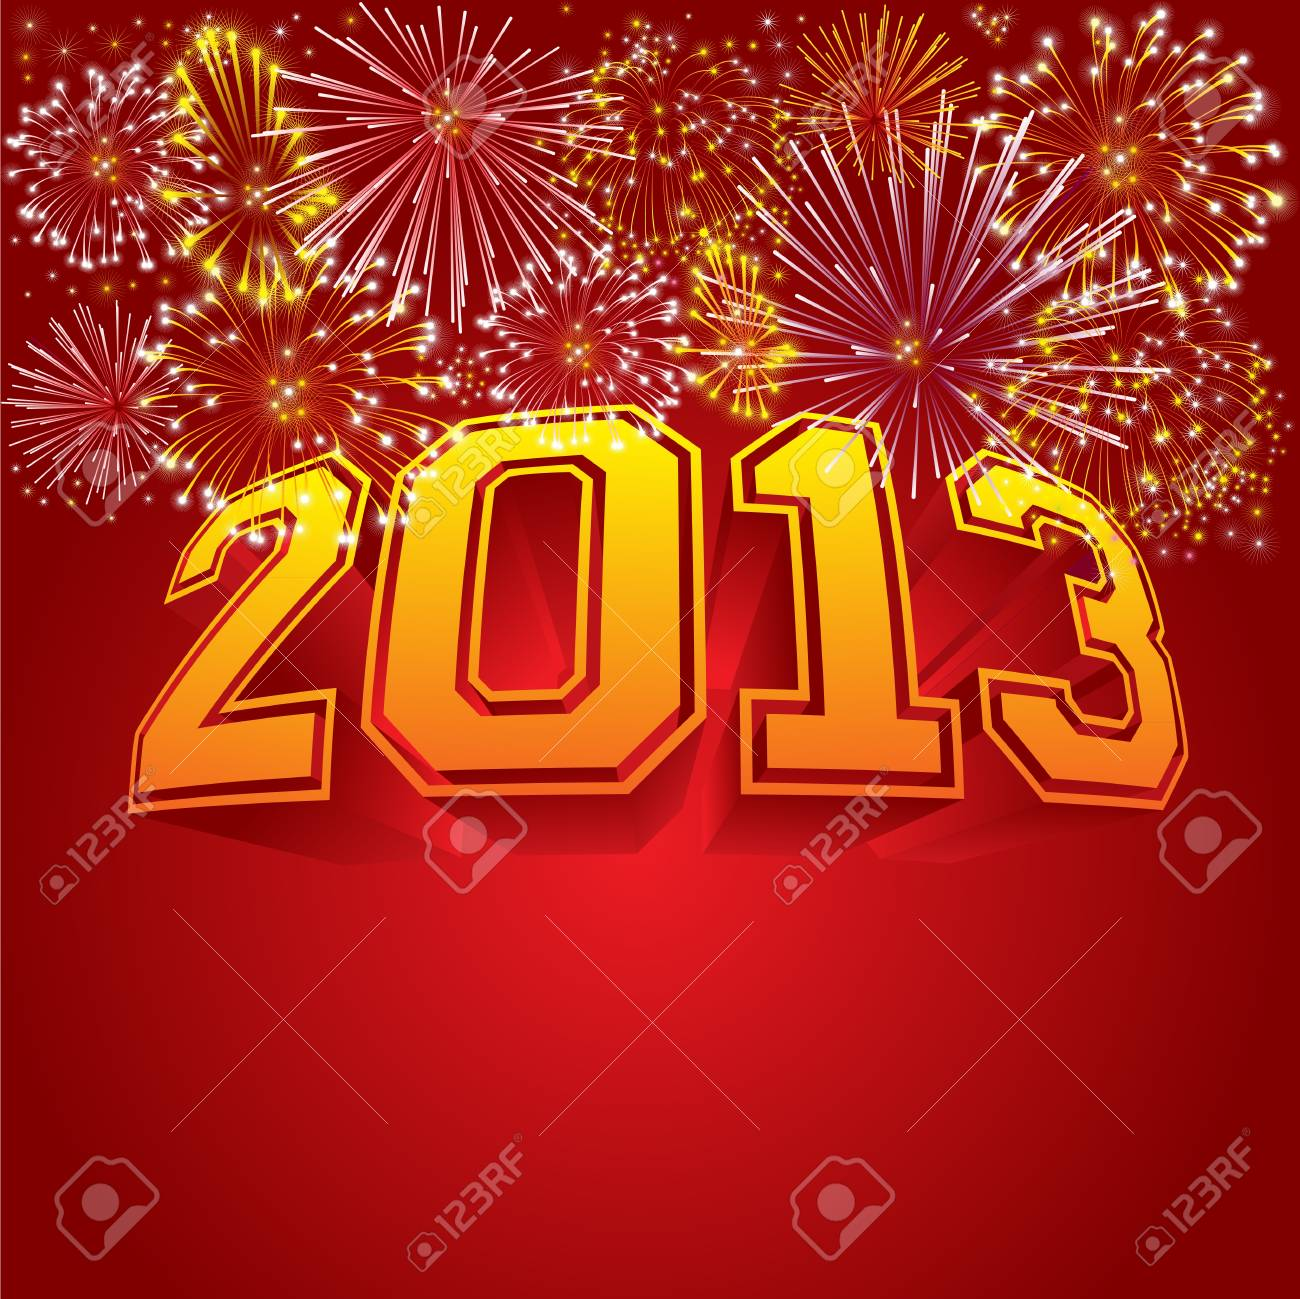 Happy new year 2013 vector illustration Stock Vector - 16627671